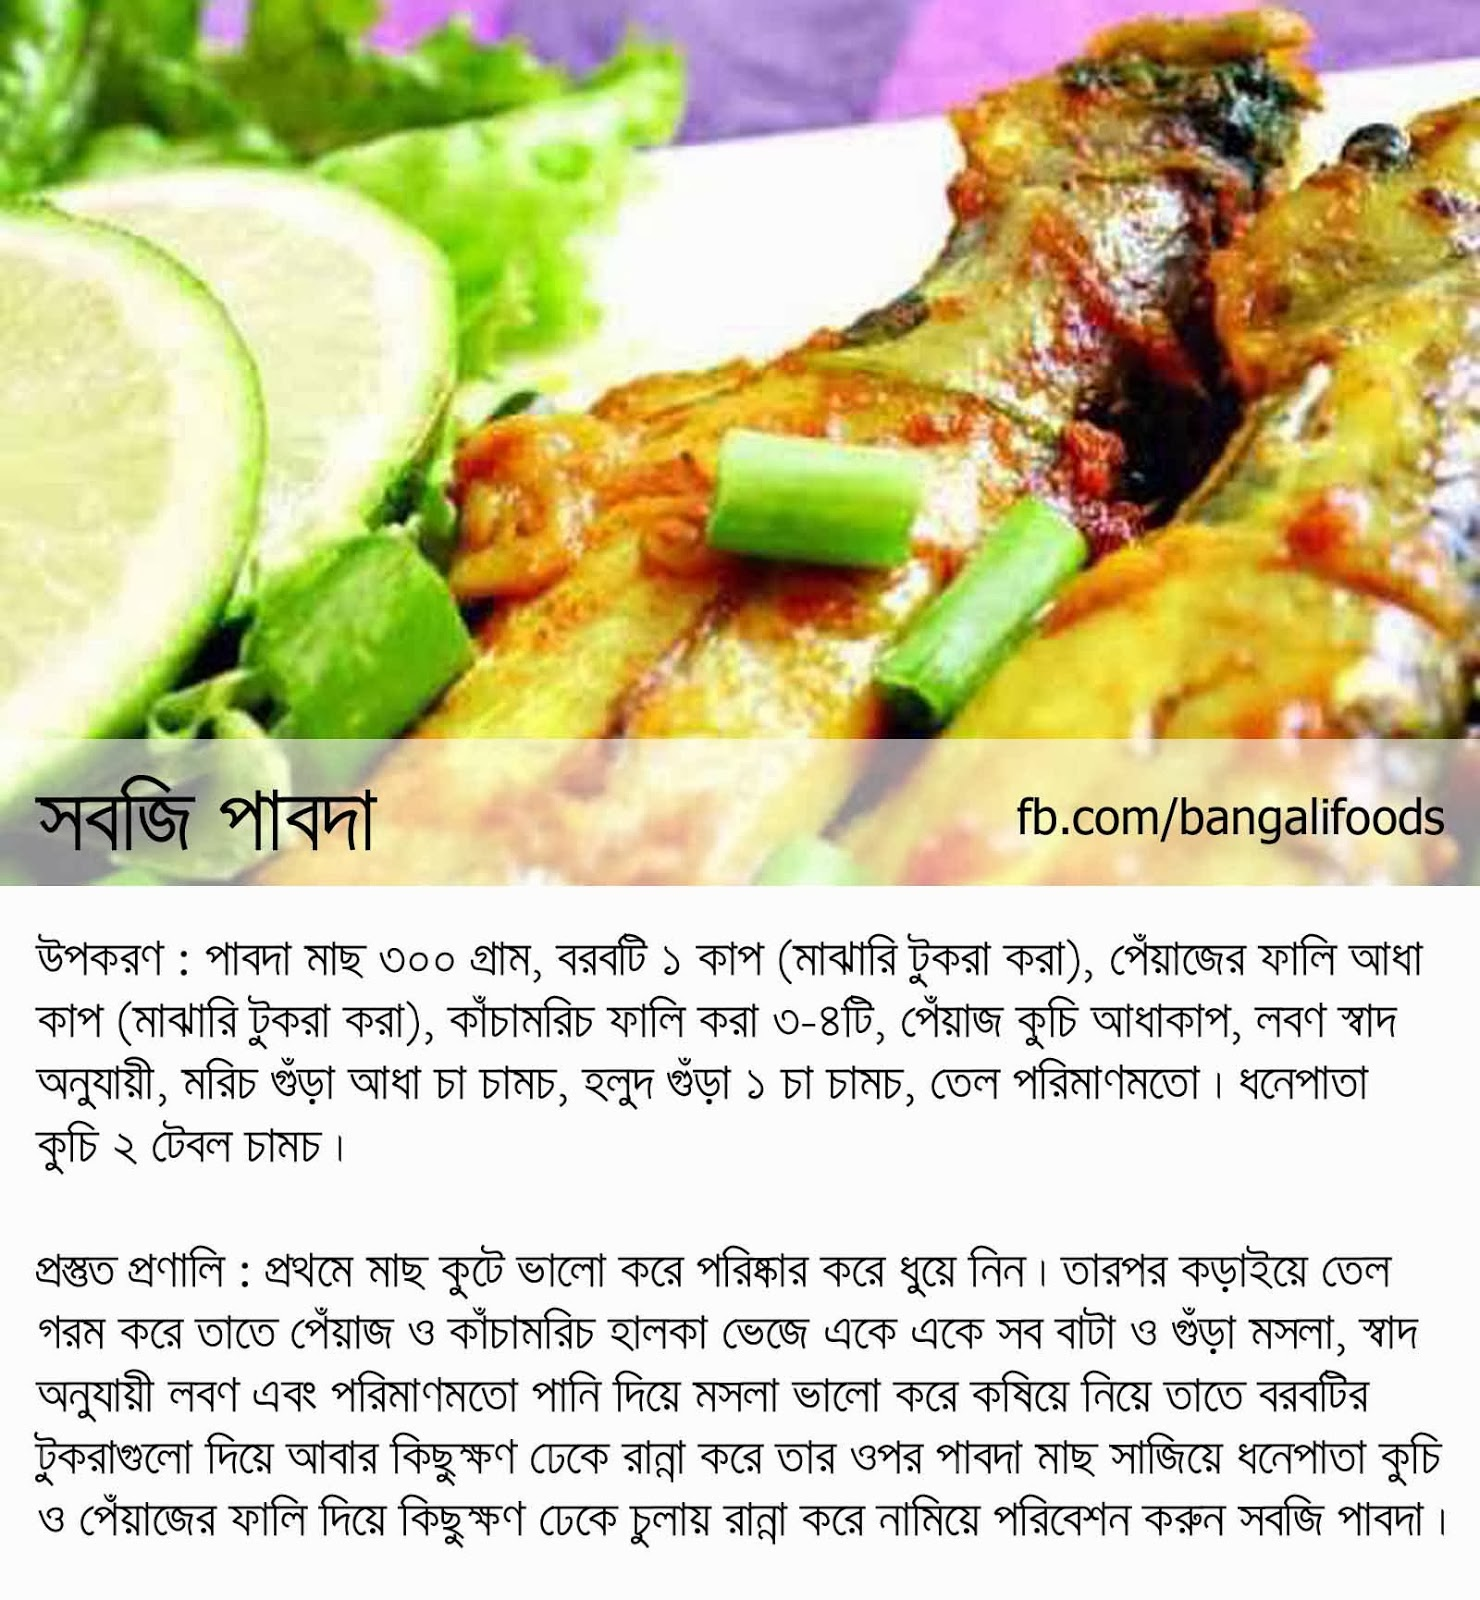 Bangali foods pabda fish recipe in bangla forumfinder Choice Image